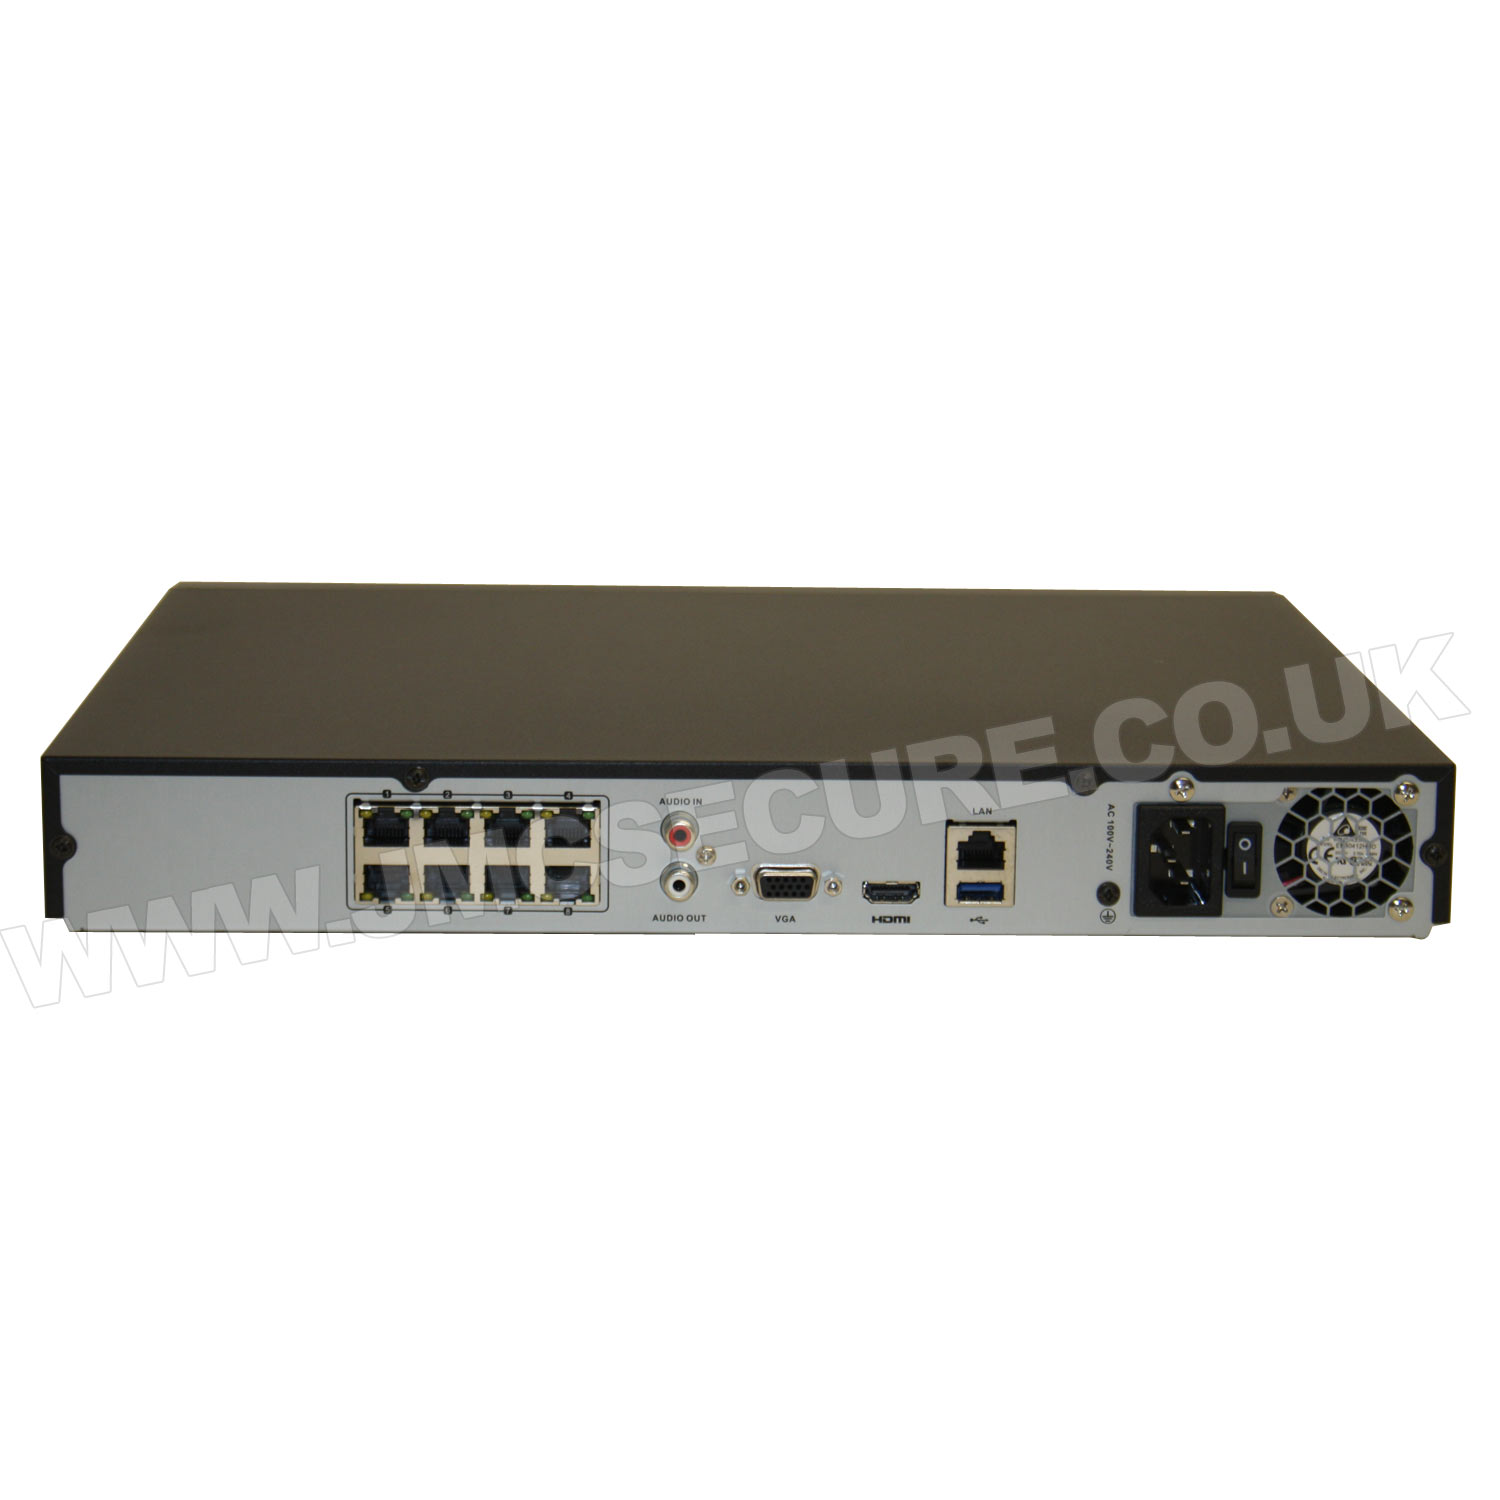 Nvr 208m A 8p Hiwatch By Hikvision 8 Channel 6mp Nvr With